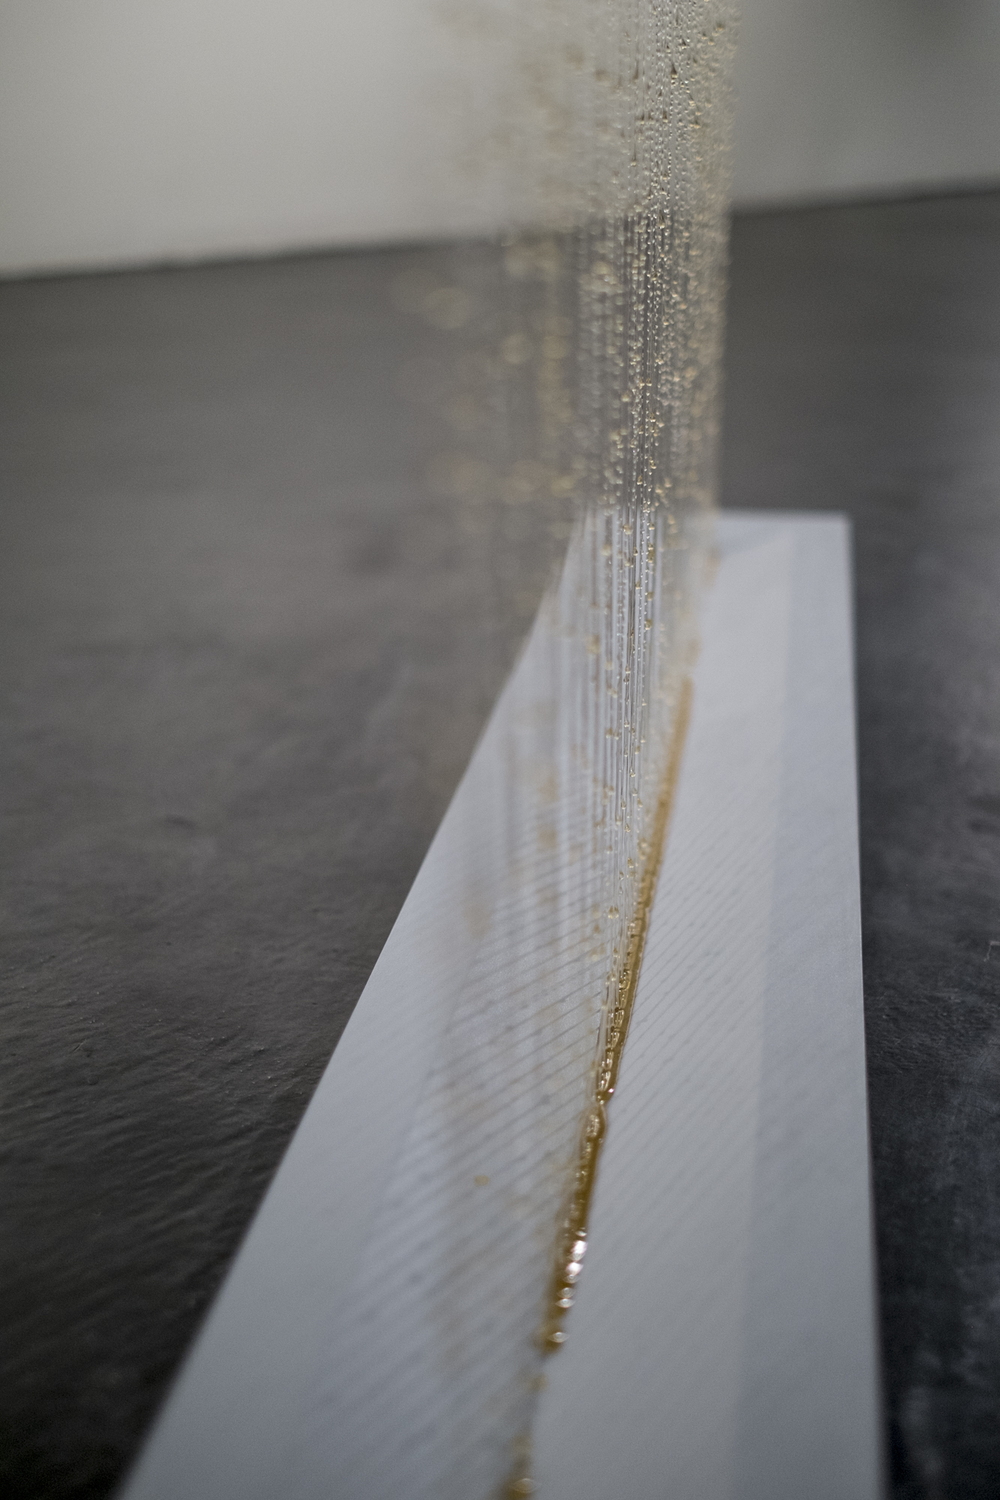 silence: time & distance  (detail)